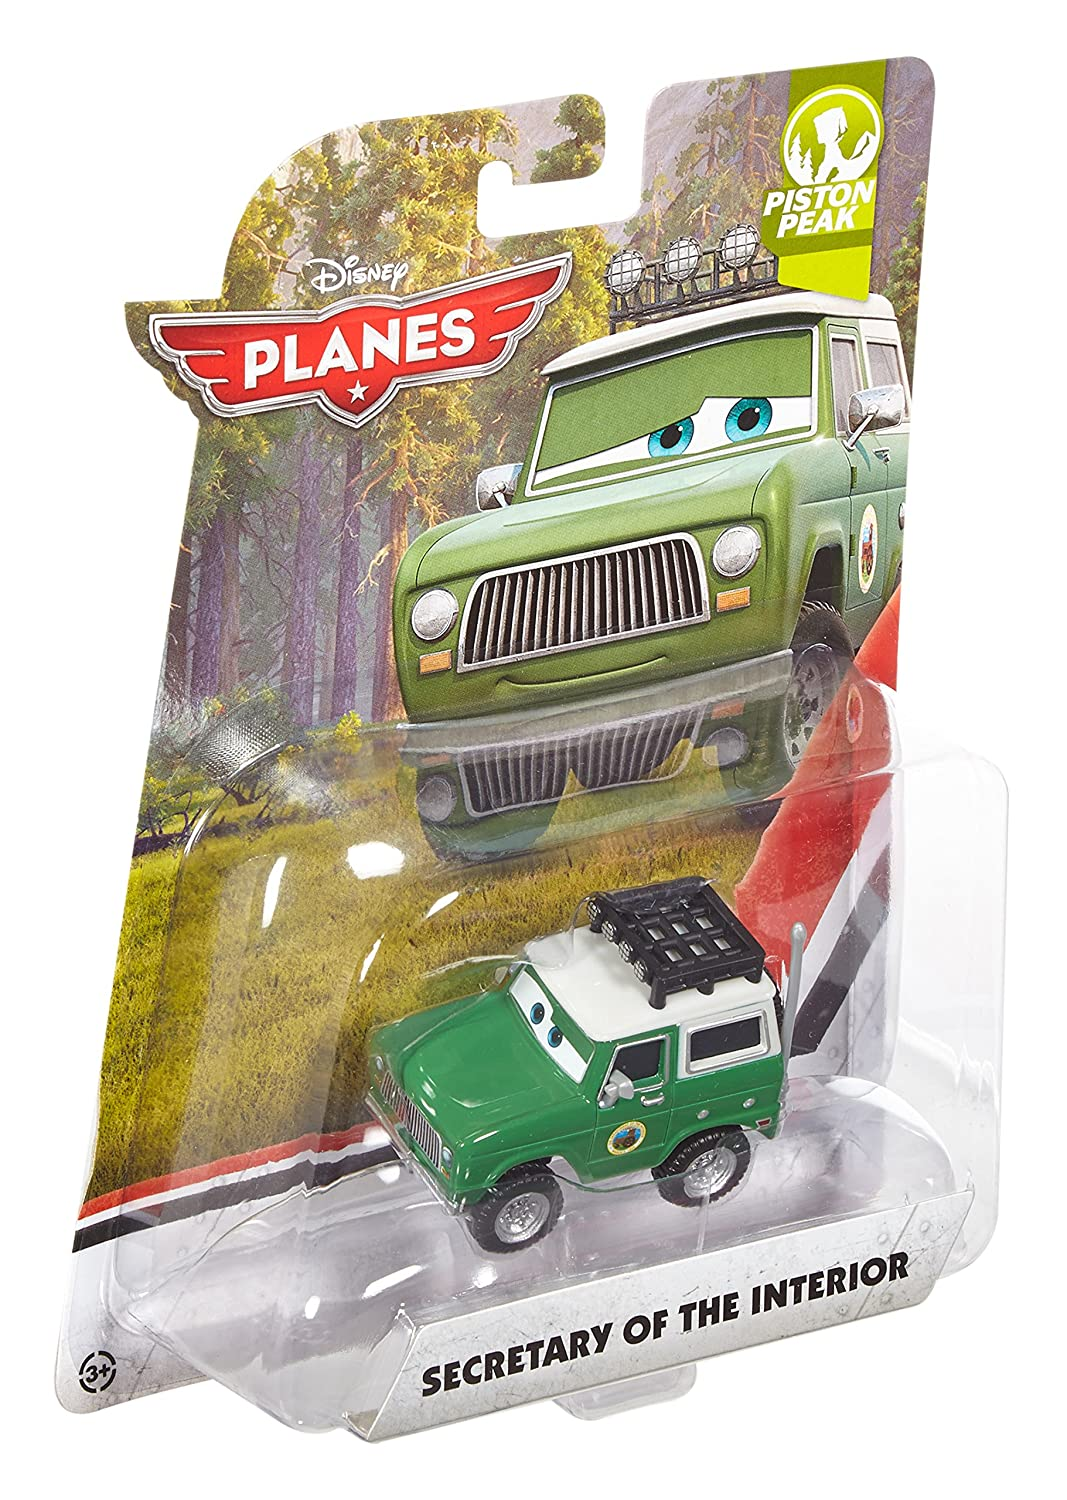 Disney Planes Secretary of the Interior Diecast Vehicle